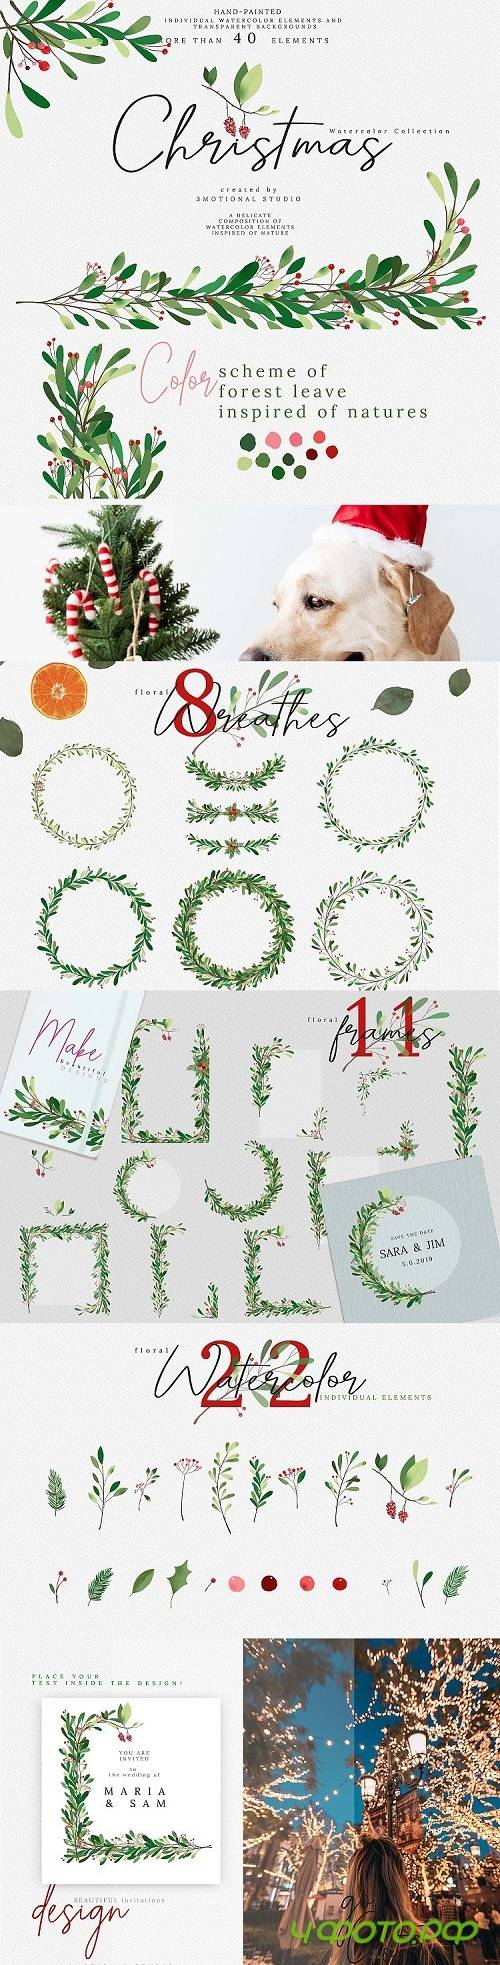 Christmas Watercolor Collection - 326361